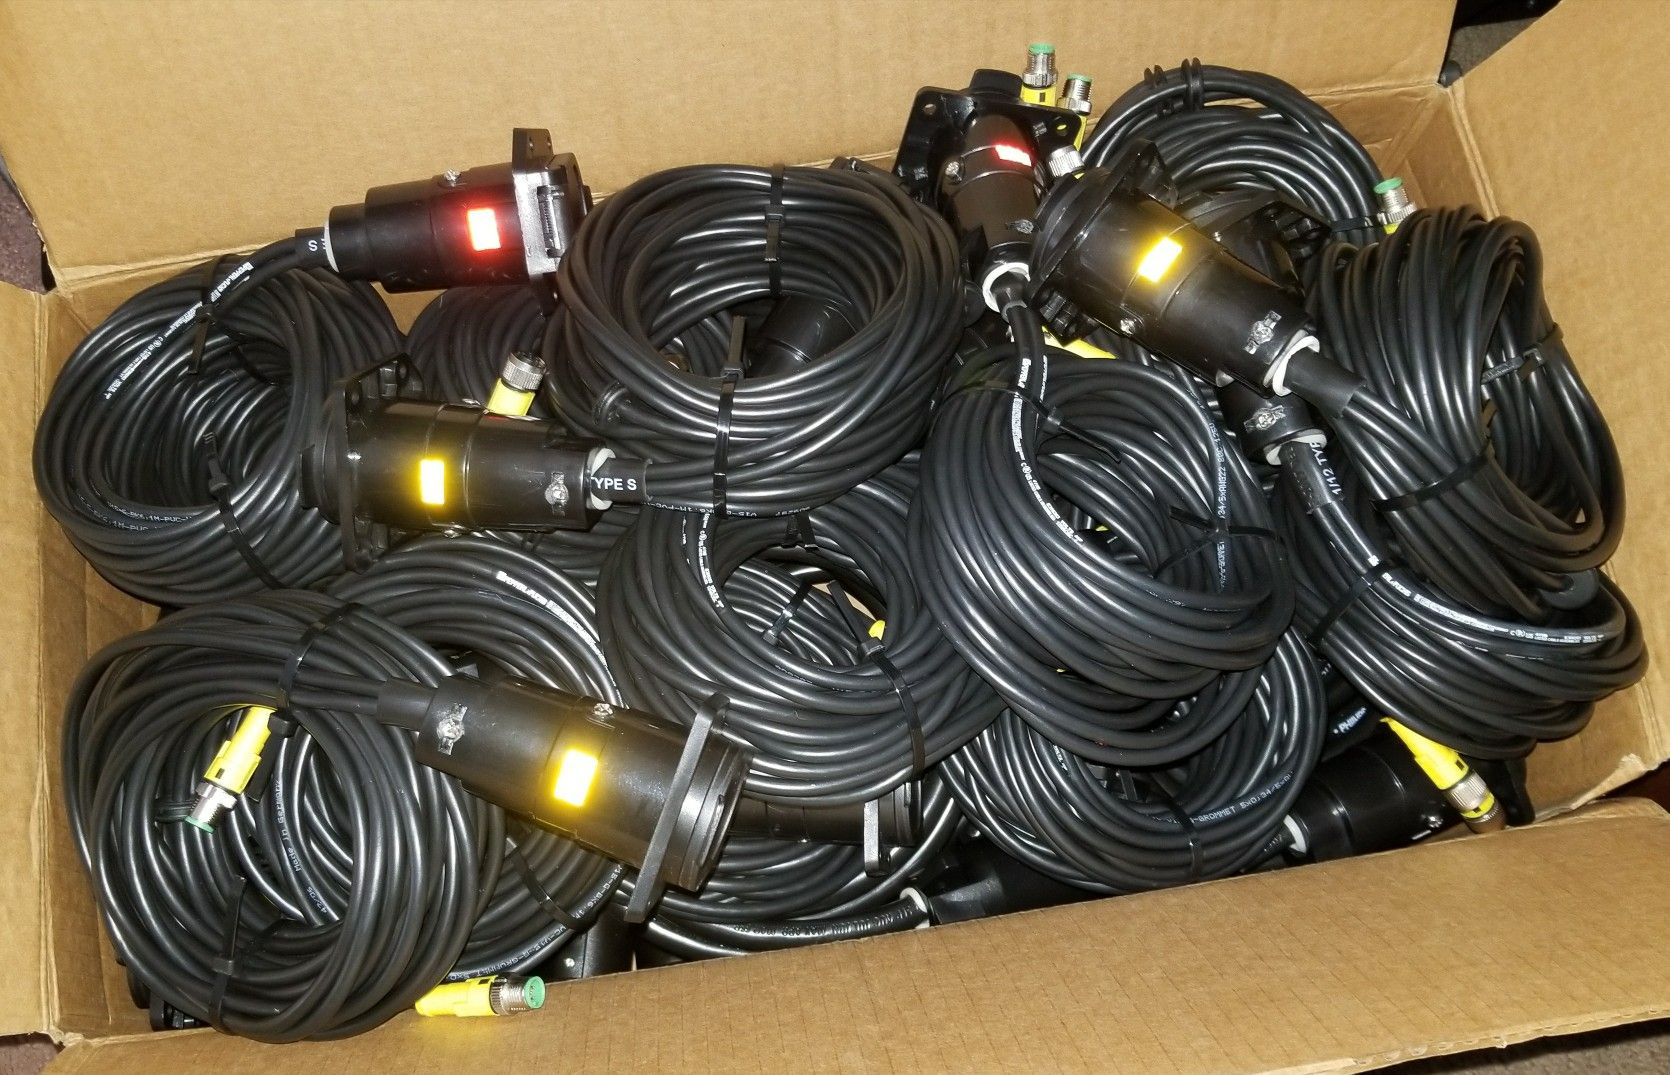 Appealing Phillips Tractor Wiring Photos - Best Image Wiring Diagram ...